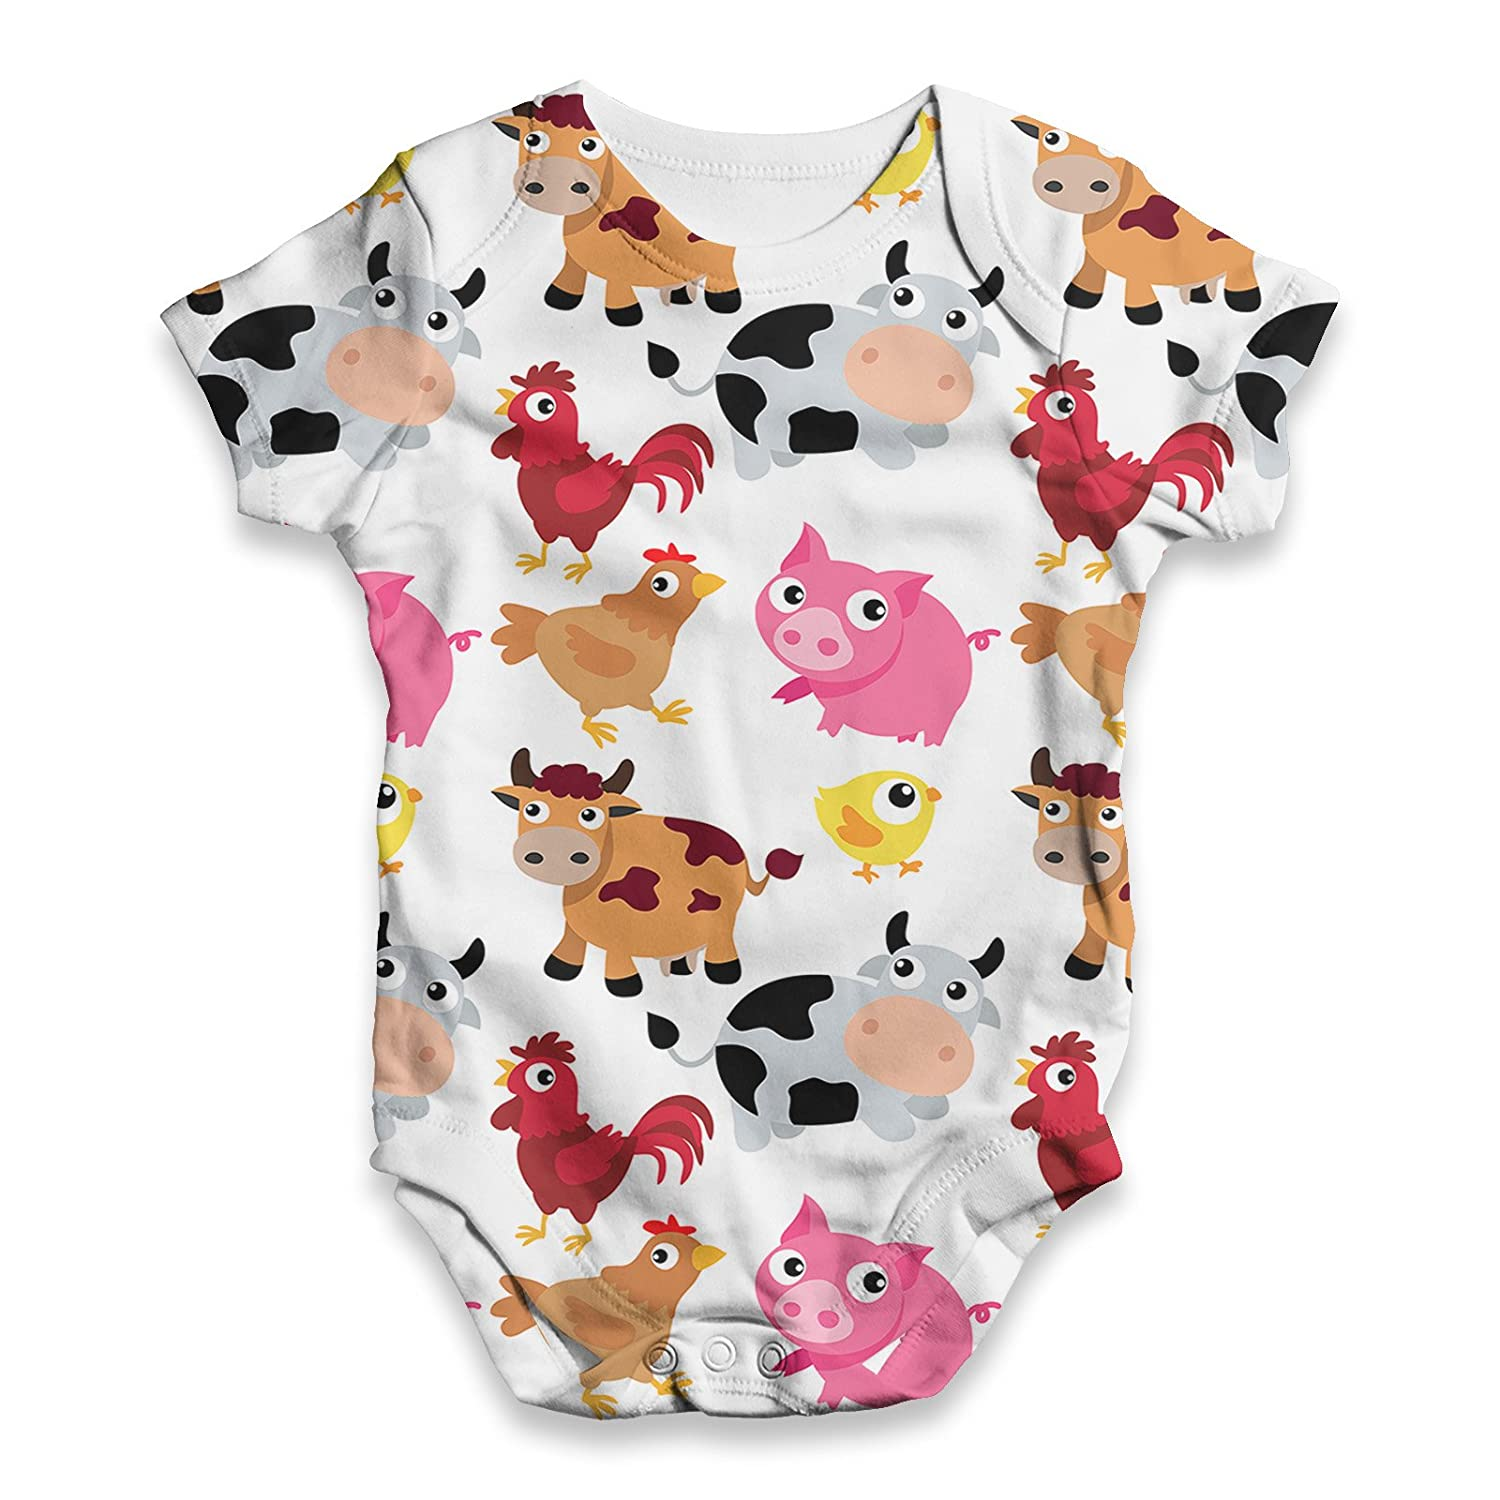 TWISTED ENVY Farm Yard Animal Baby Unisex Funny All-Over Print Bodysuit Baby Grow Baby Romper